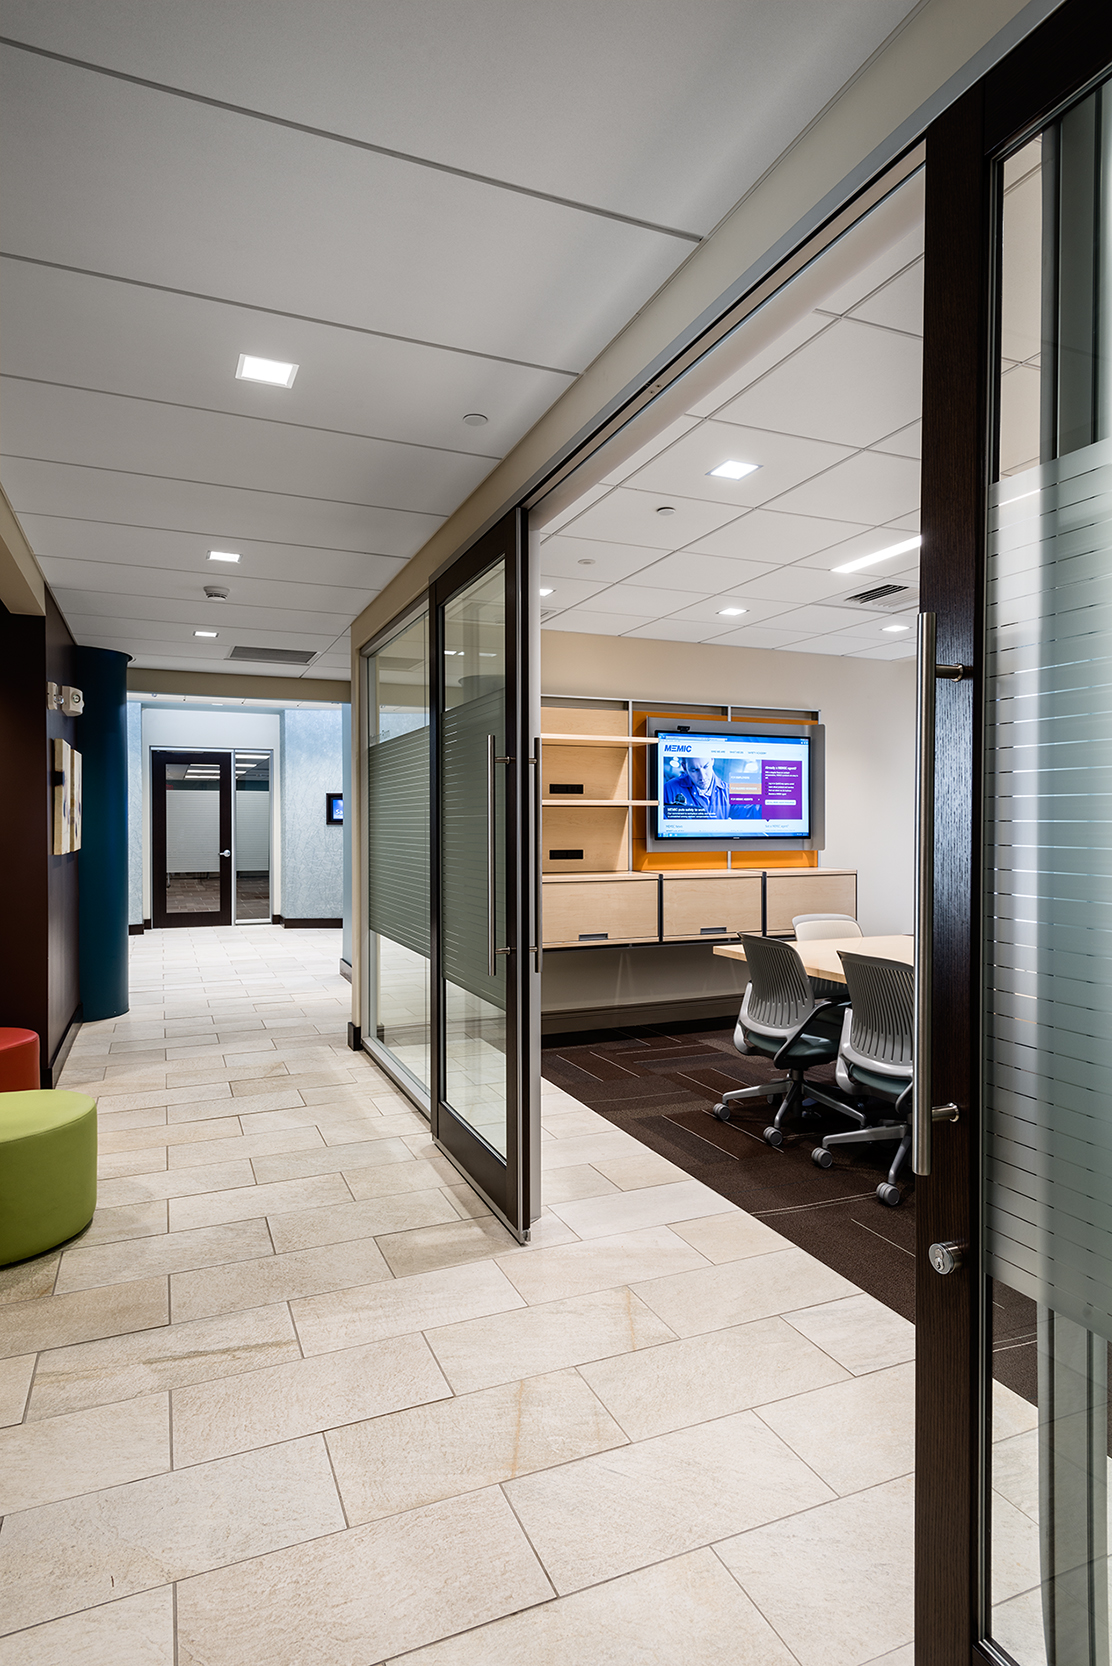 Glass partitions and a sliding door turn an awkward, narrow space into a conference hub, with a small seating area to the left.